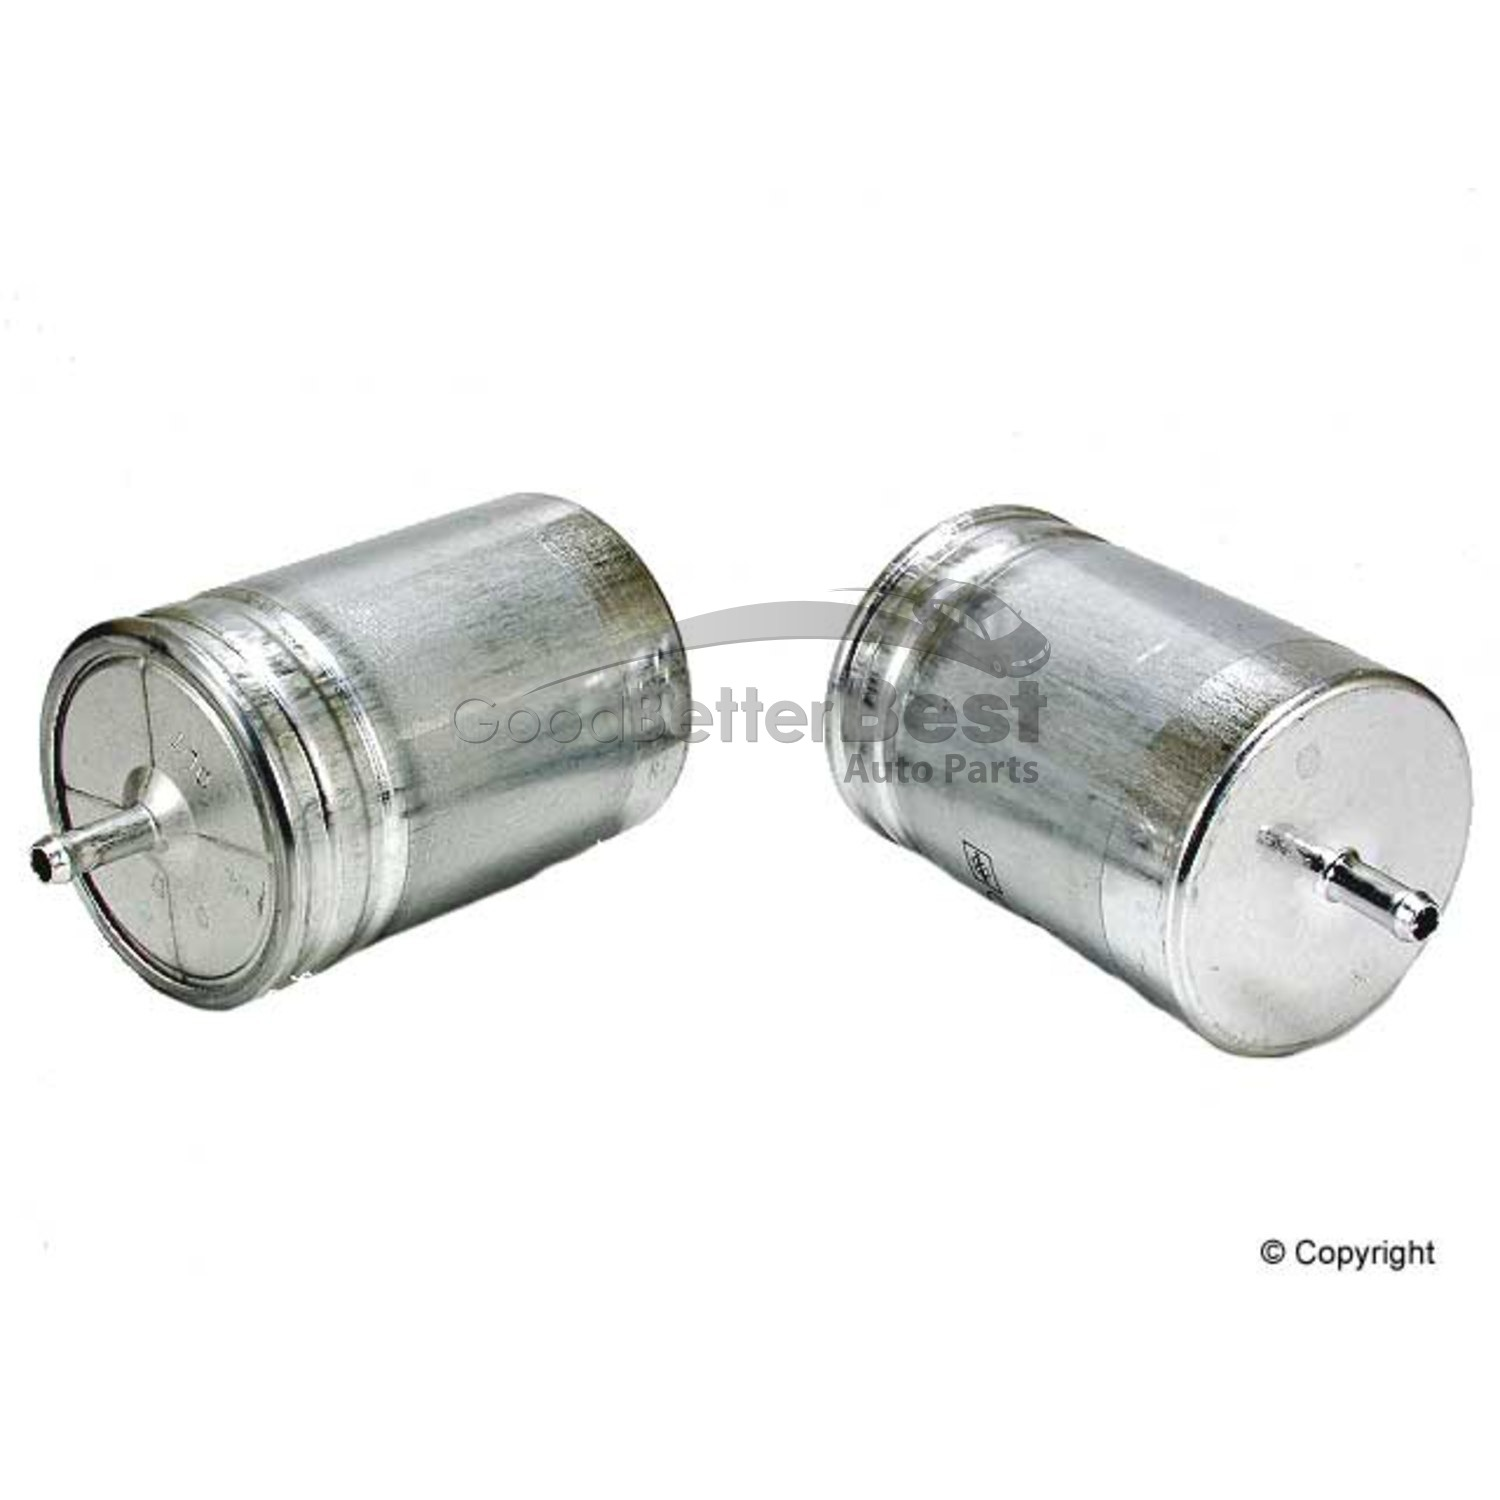 hight resolution of details about new mahle fuel filter kl65 0024772701 for mercedes mb